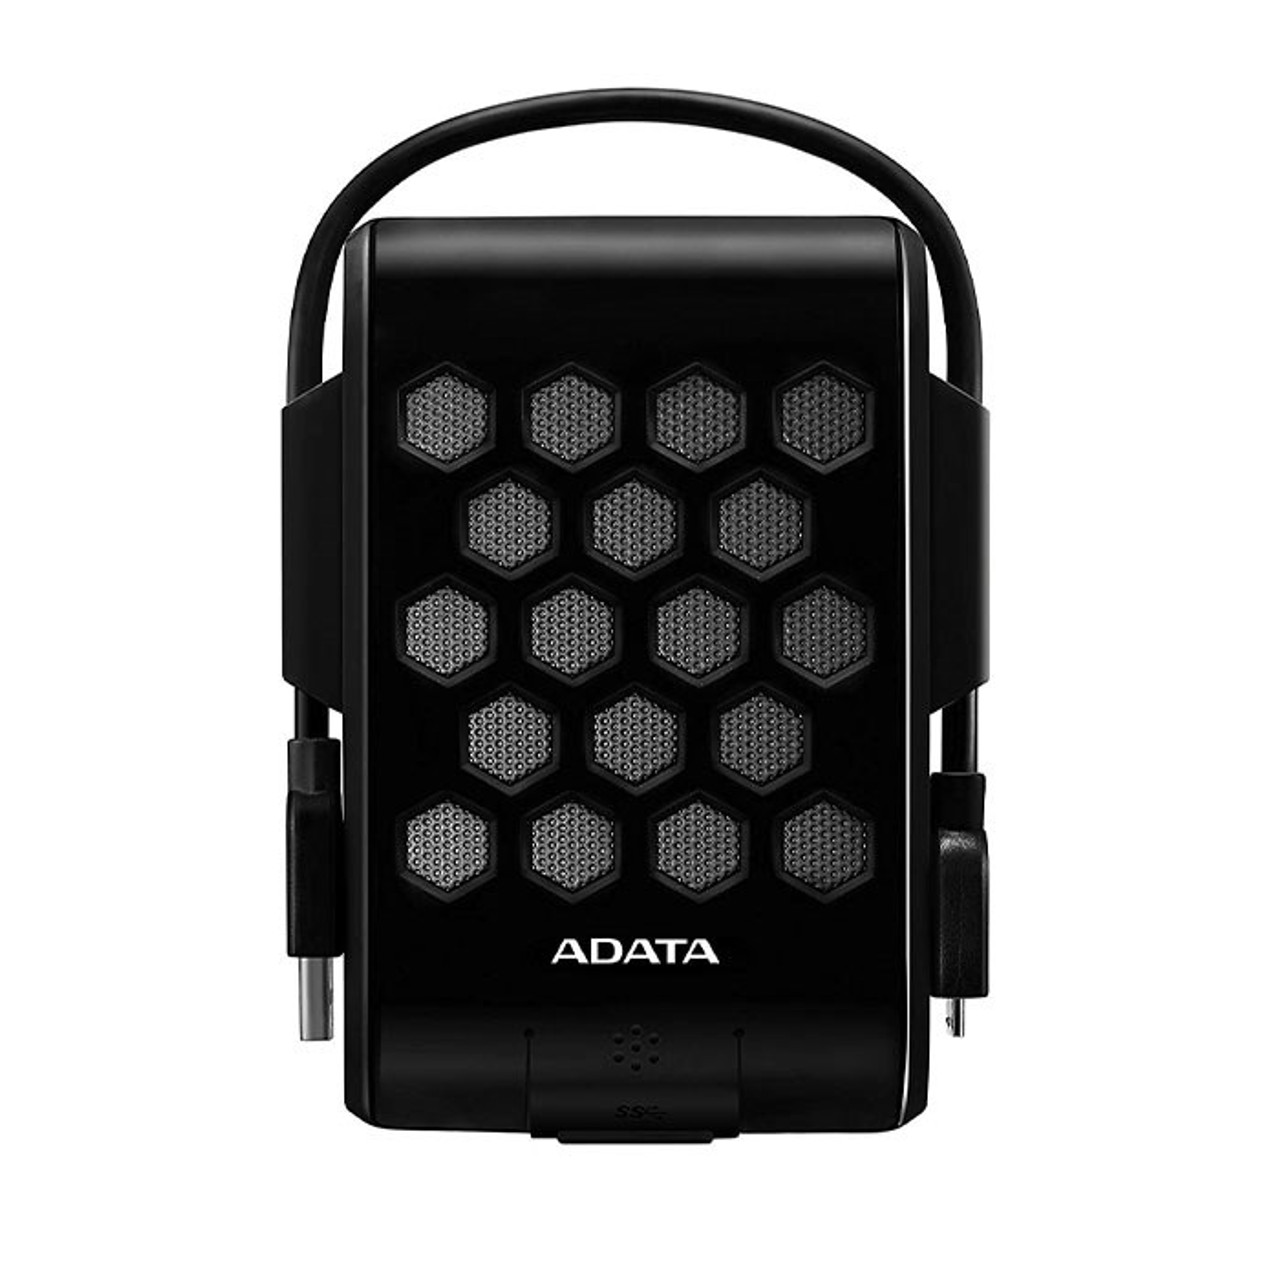 Image for Adata HD720 2TB USB 3.0 Military-Grade Shockproof Portable External HDD - Black CX Computer Superstore